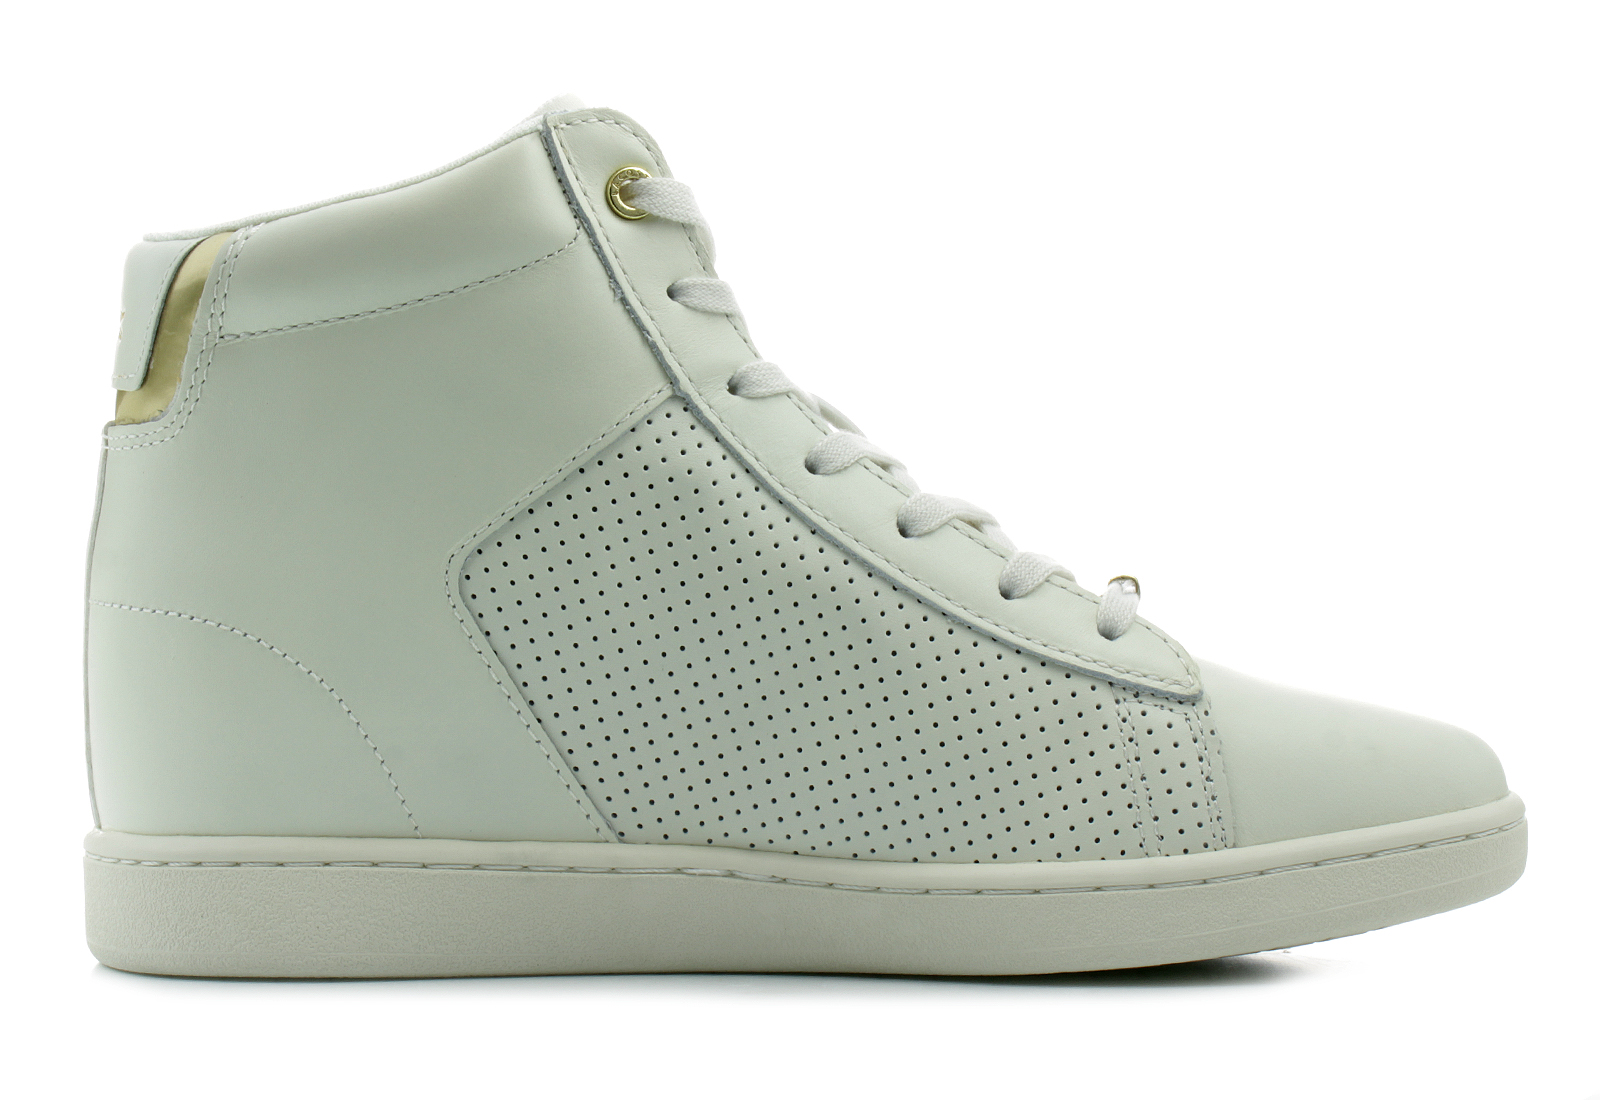 lacoste shoes carnaby evo wedge 173spw0044 06b